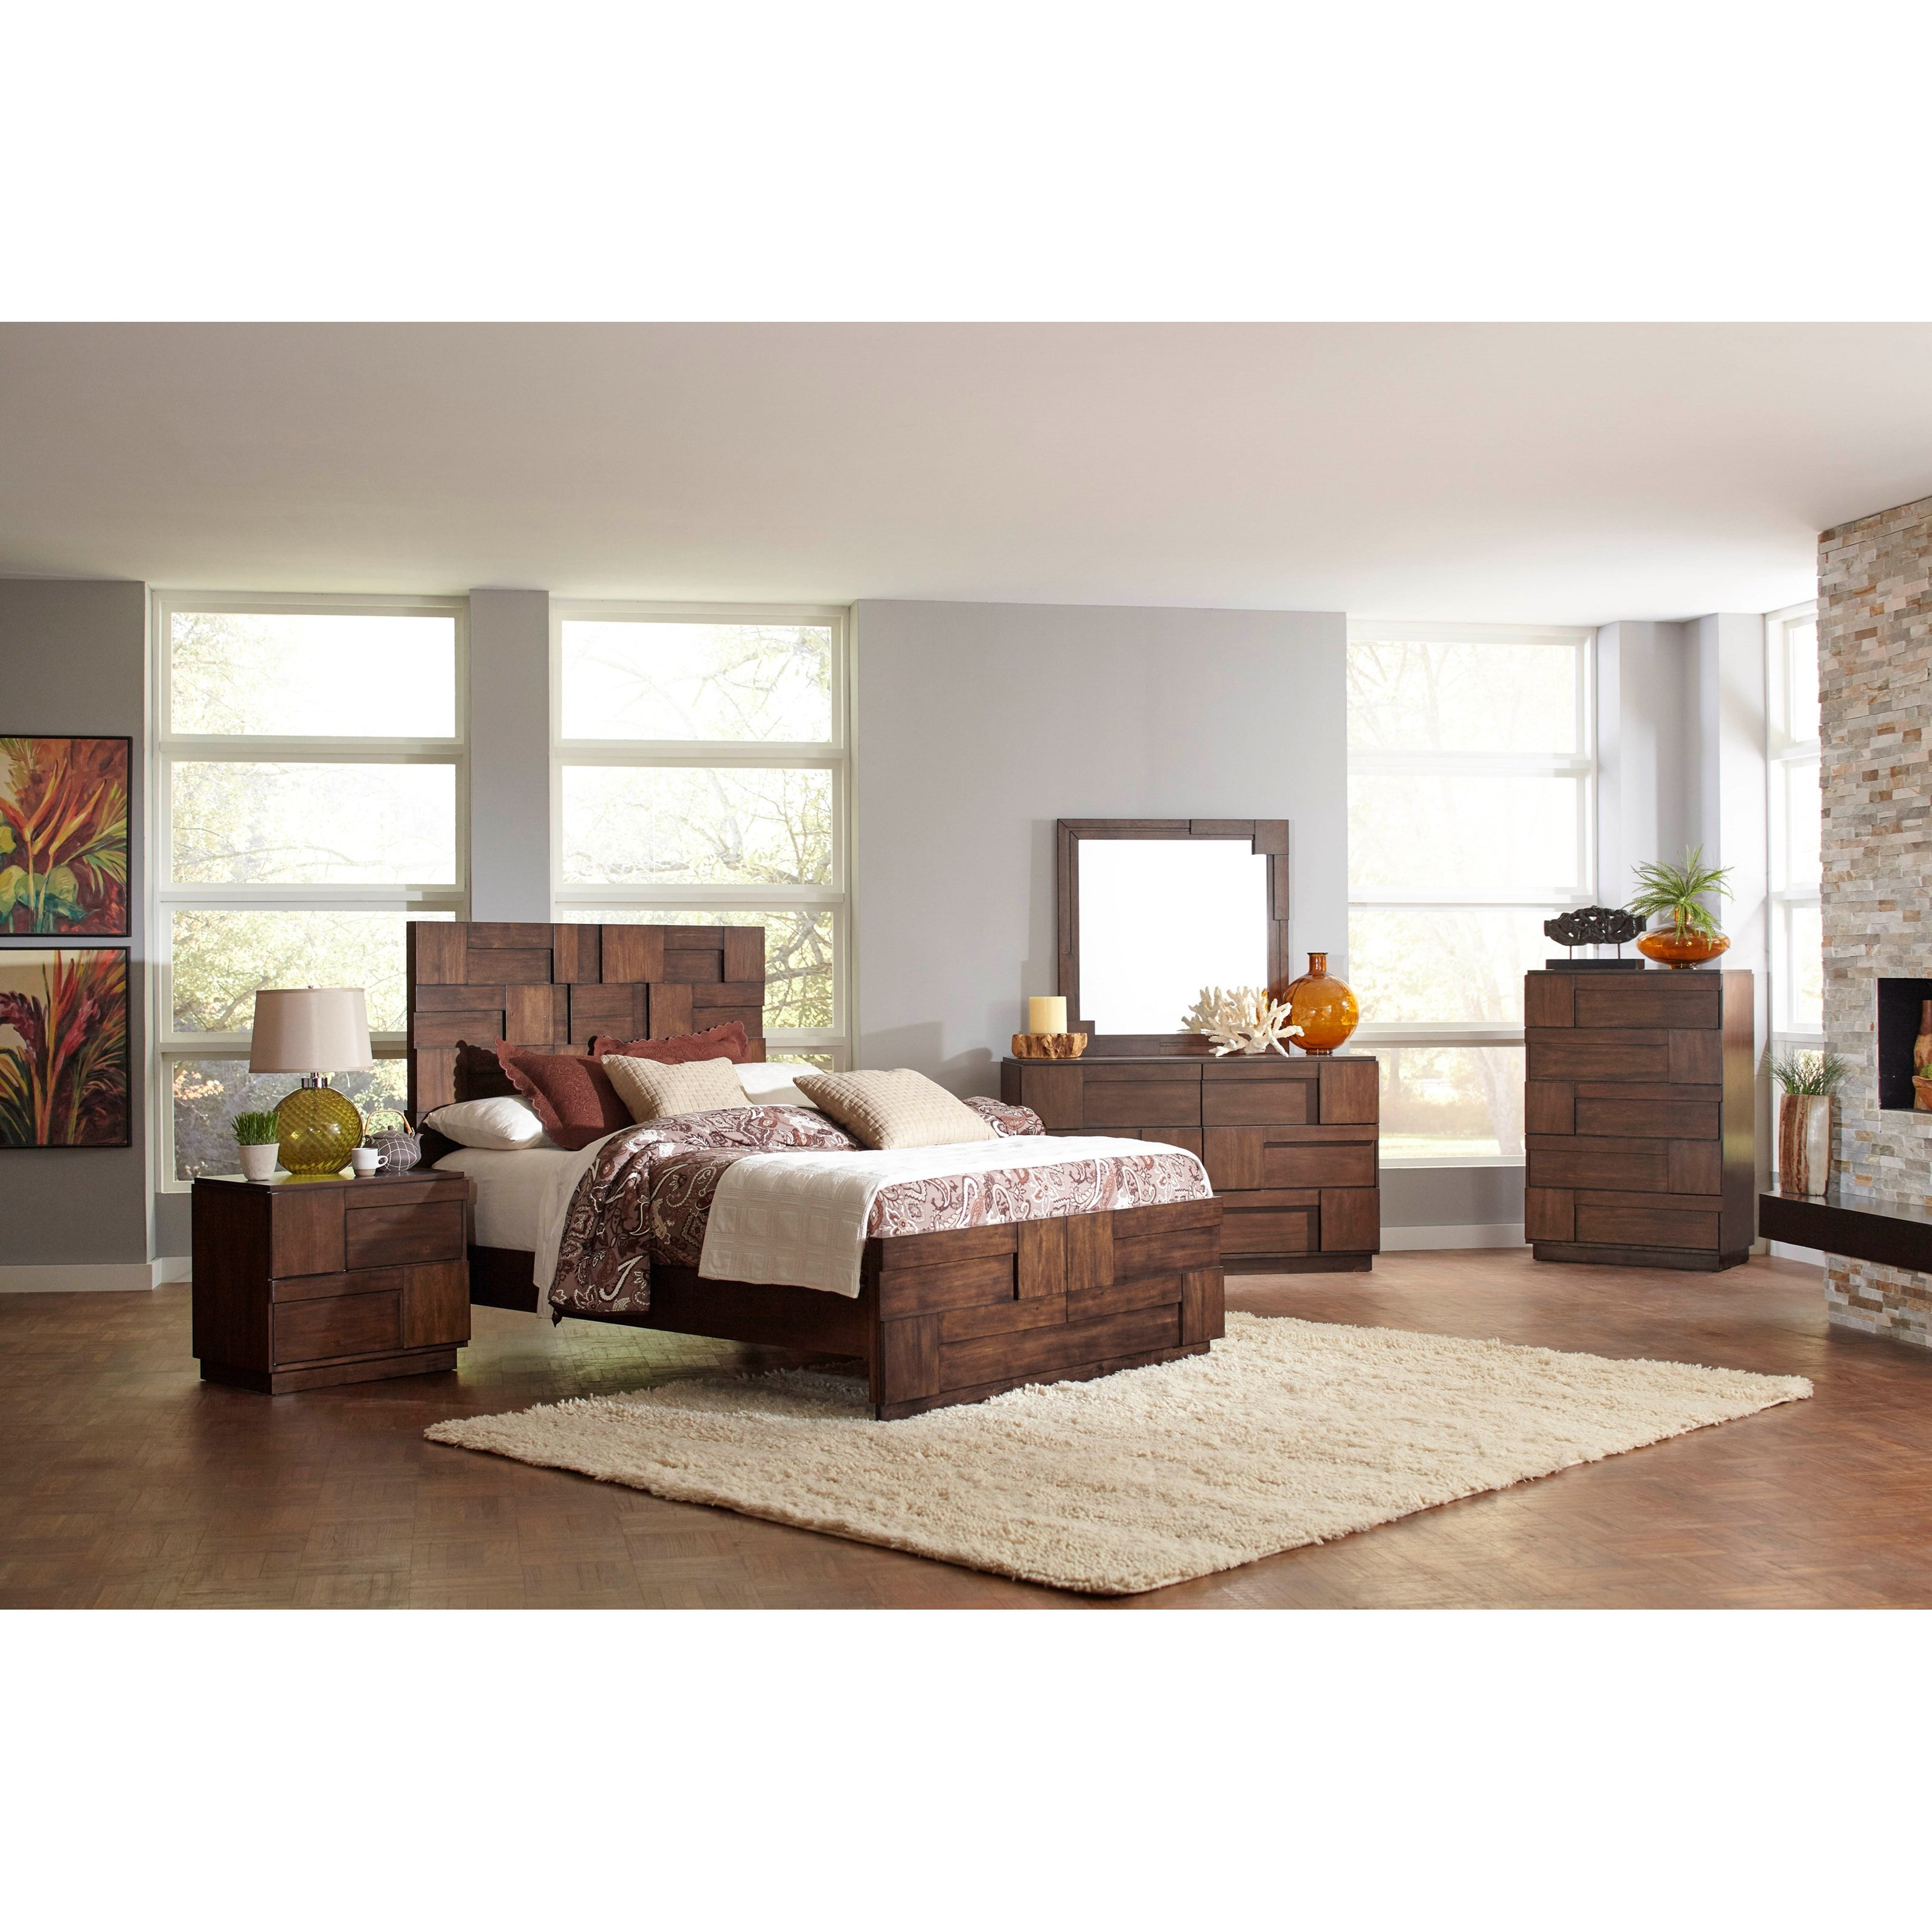 Coaster Gallagher Queen Bedroom Group - Item Number: 200850 Q Bedroom Group 1